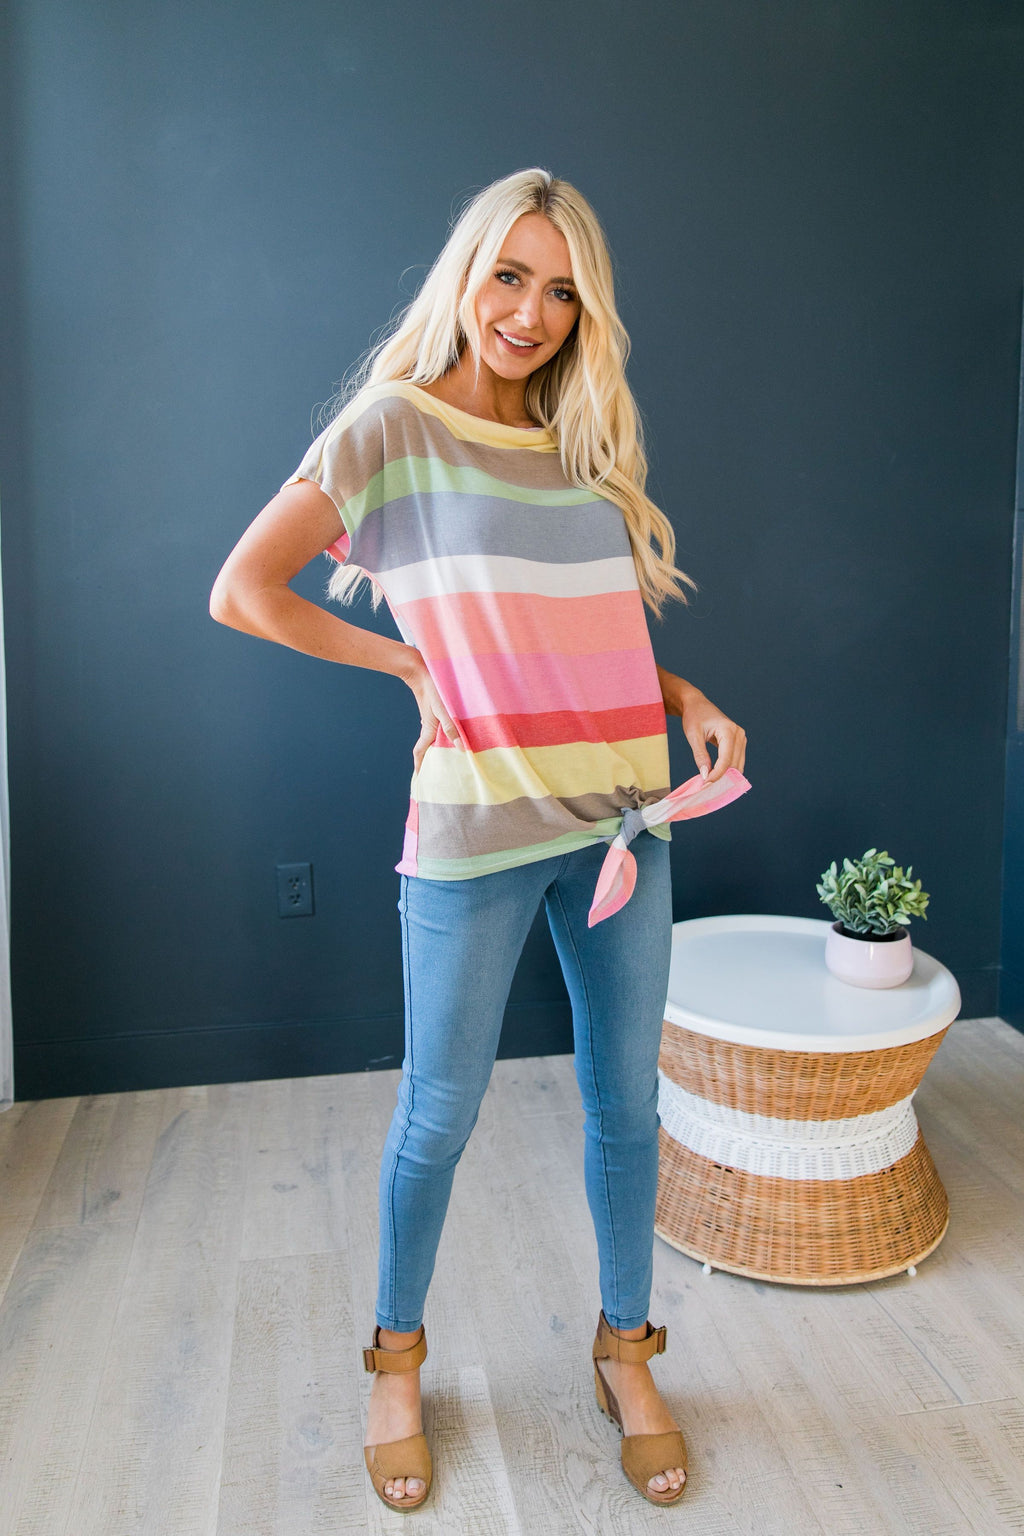 Pastel Rainbow Tie Front Top - SHOPTHRIVER